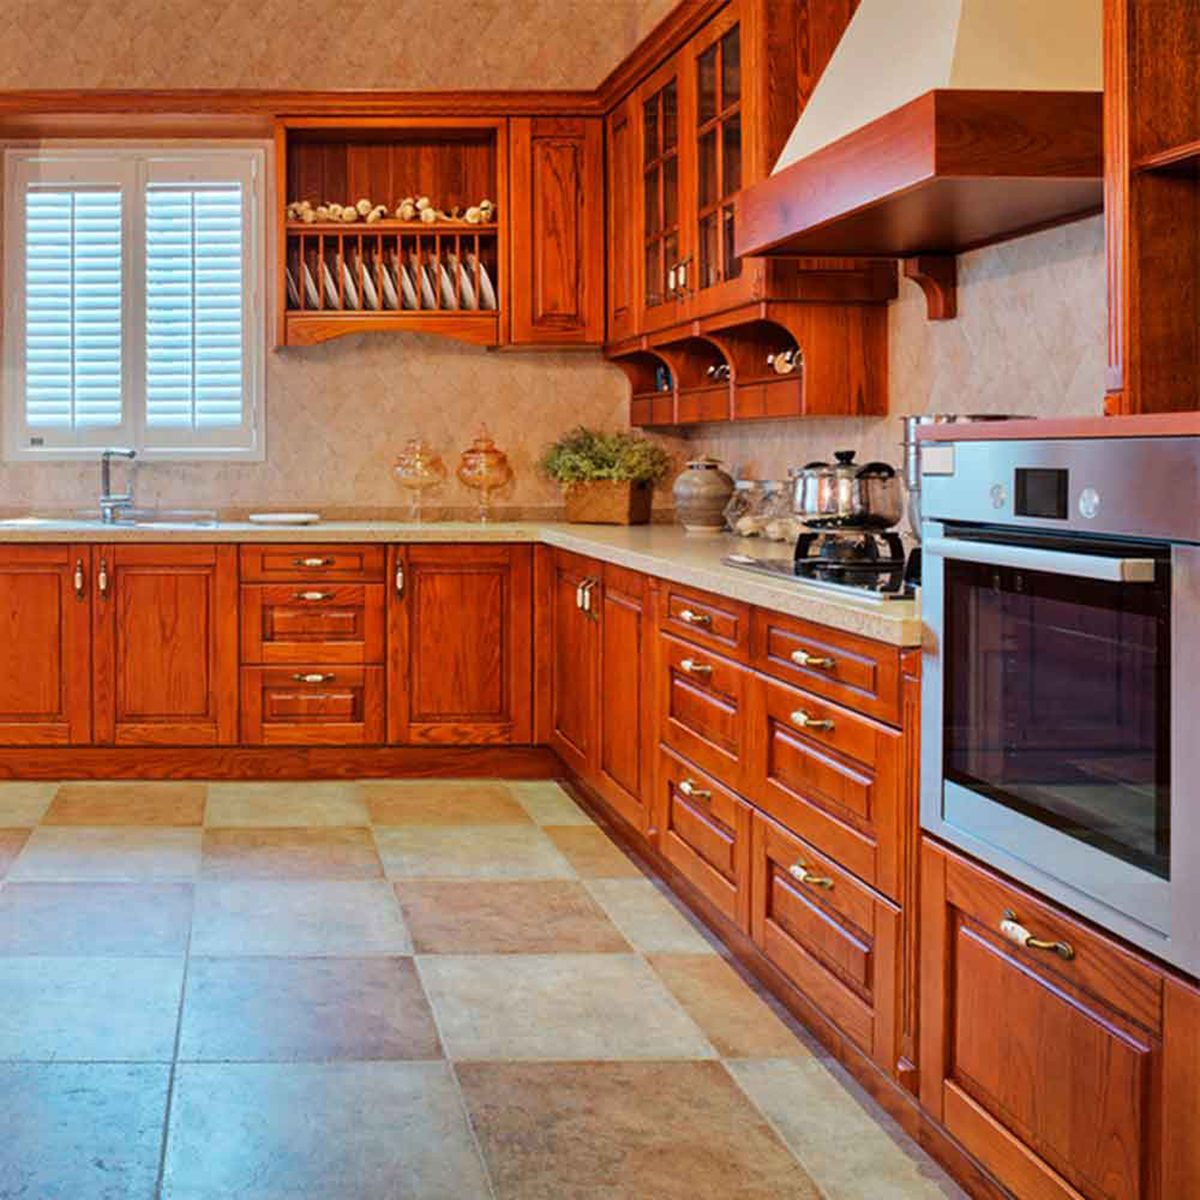 Warmly lit kitchen with wooden cabinets